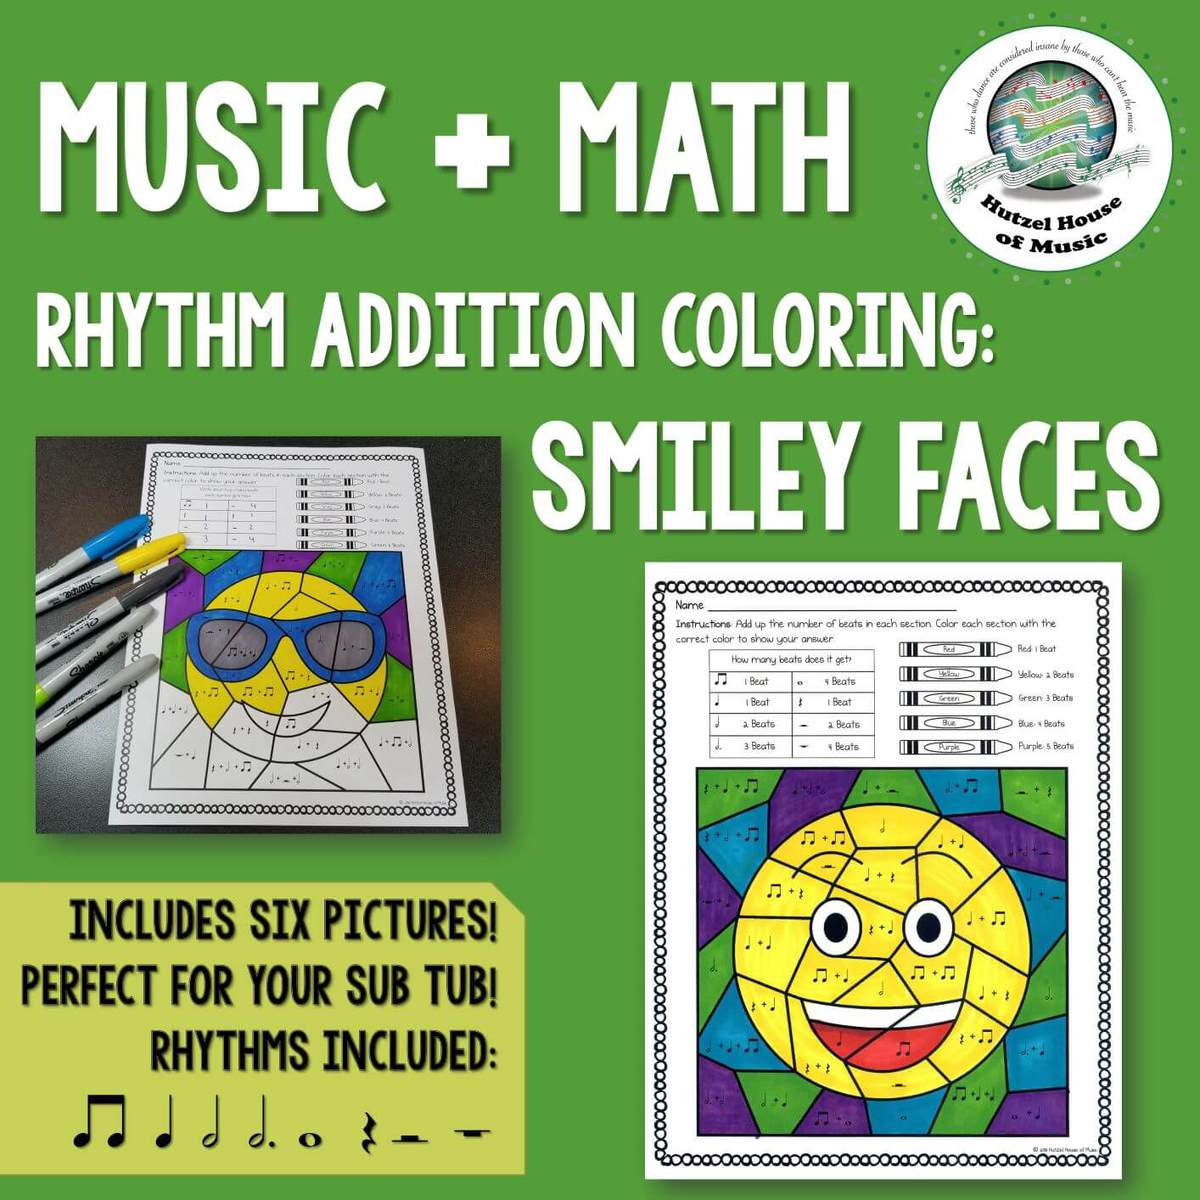 Emoji Music + Math Rhythm Coloring